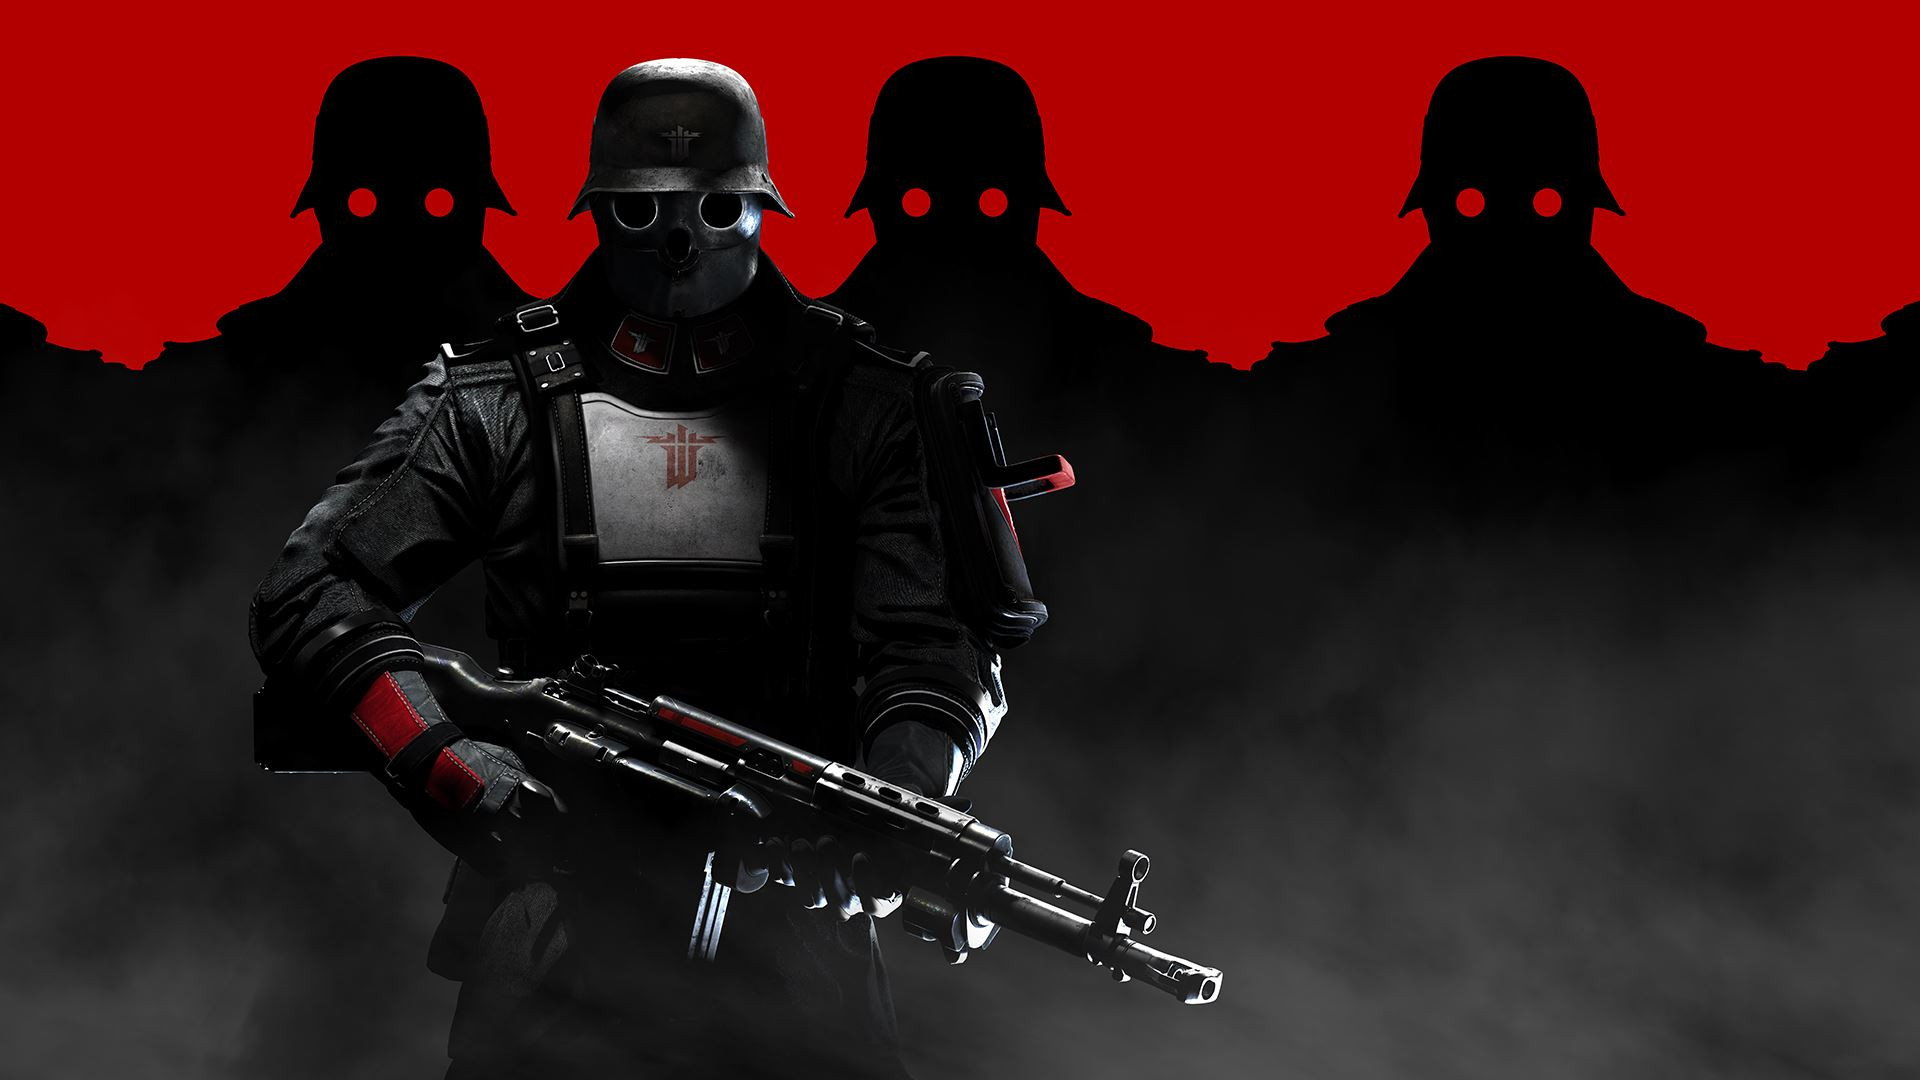 background - Historie série #1: Wolfenstein